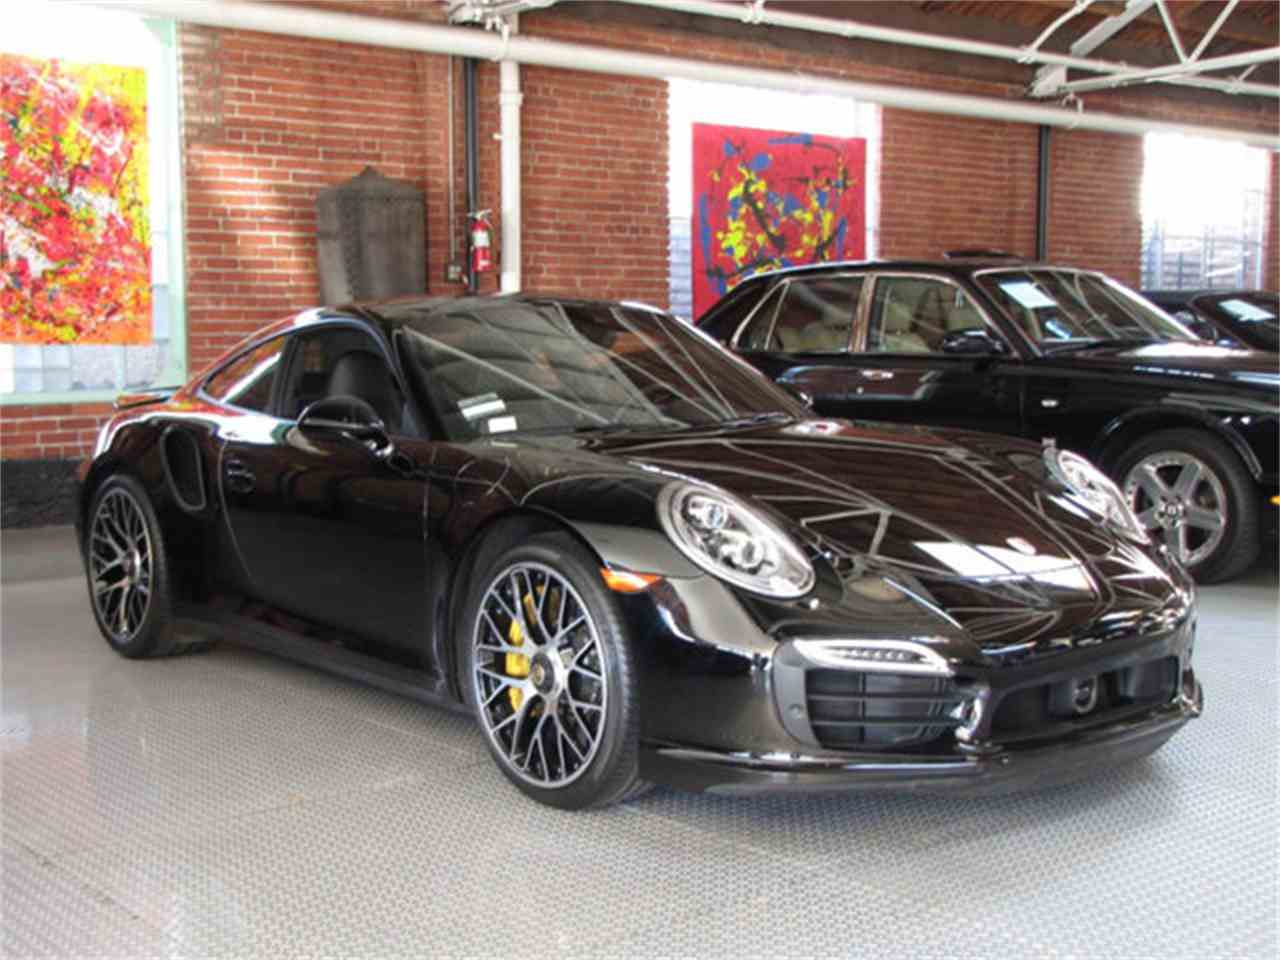 Large Picture of '16 Porsche 911 - $154,900.00 Offered by JEM Motor Corp. - MFRS